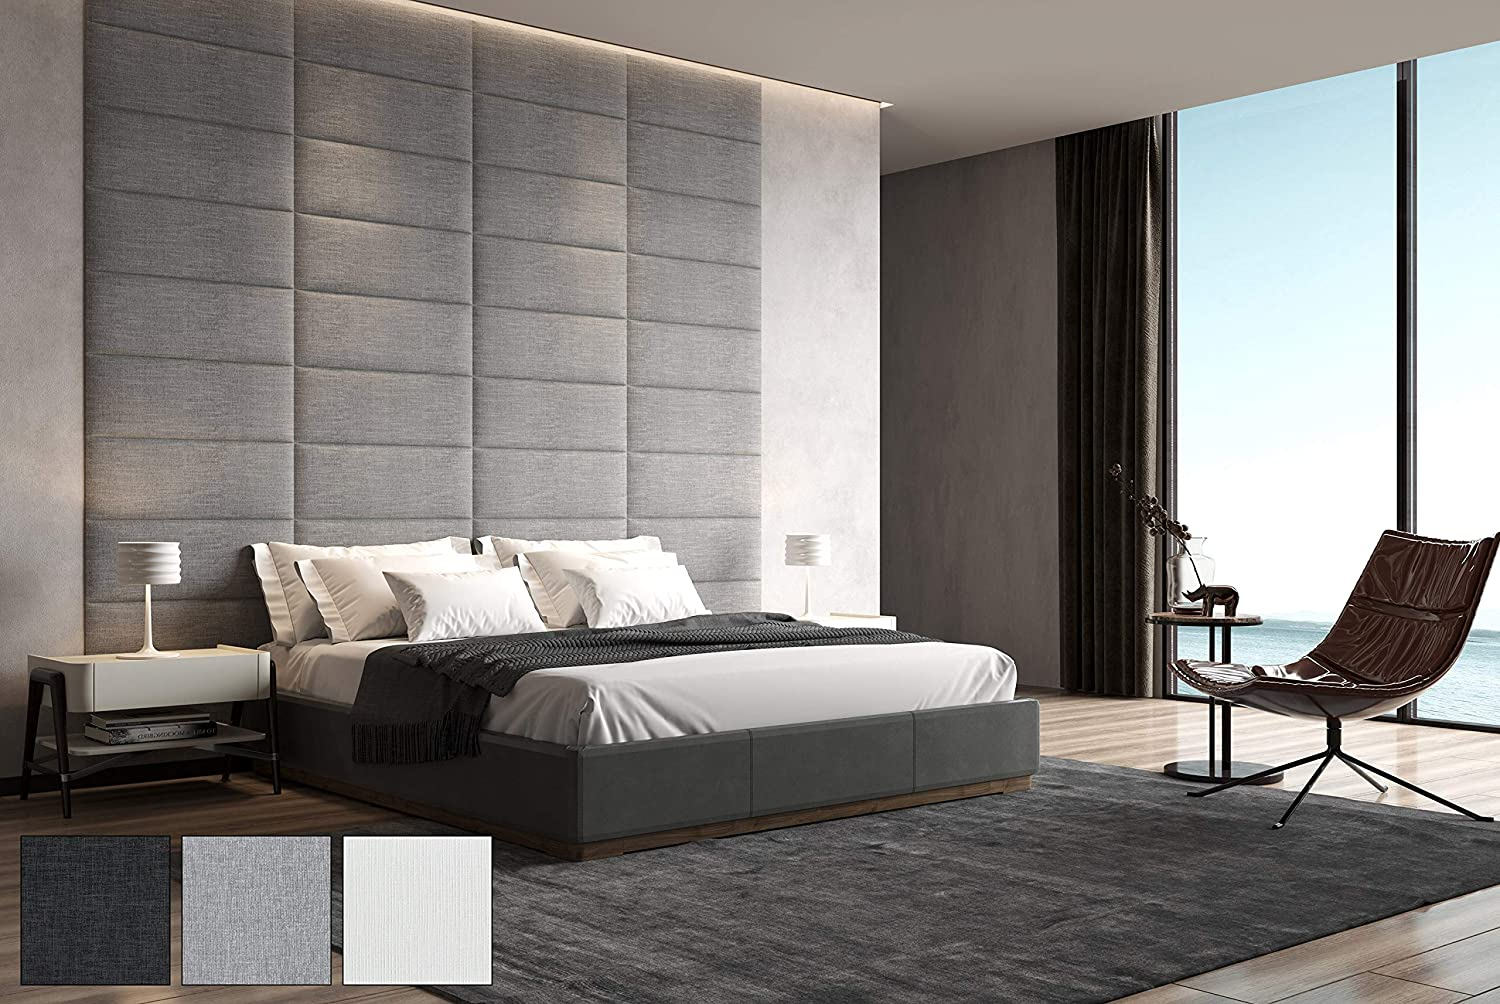 Art3d Padded Bed Headboard for Queen/Twin/King/Full-Removable-Sized 31.5x11.8inches Pack of 8pcs-Gray, Upholstered Wall Panels for Interior Wall Decor